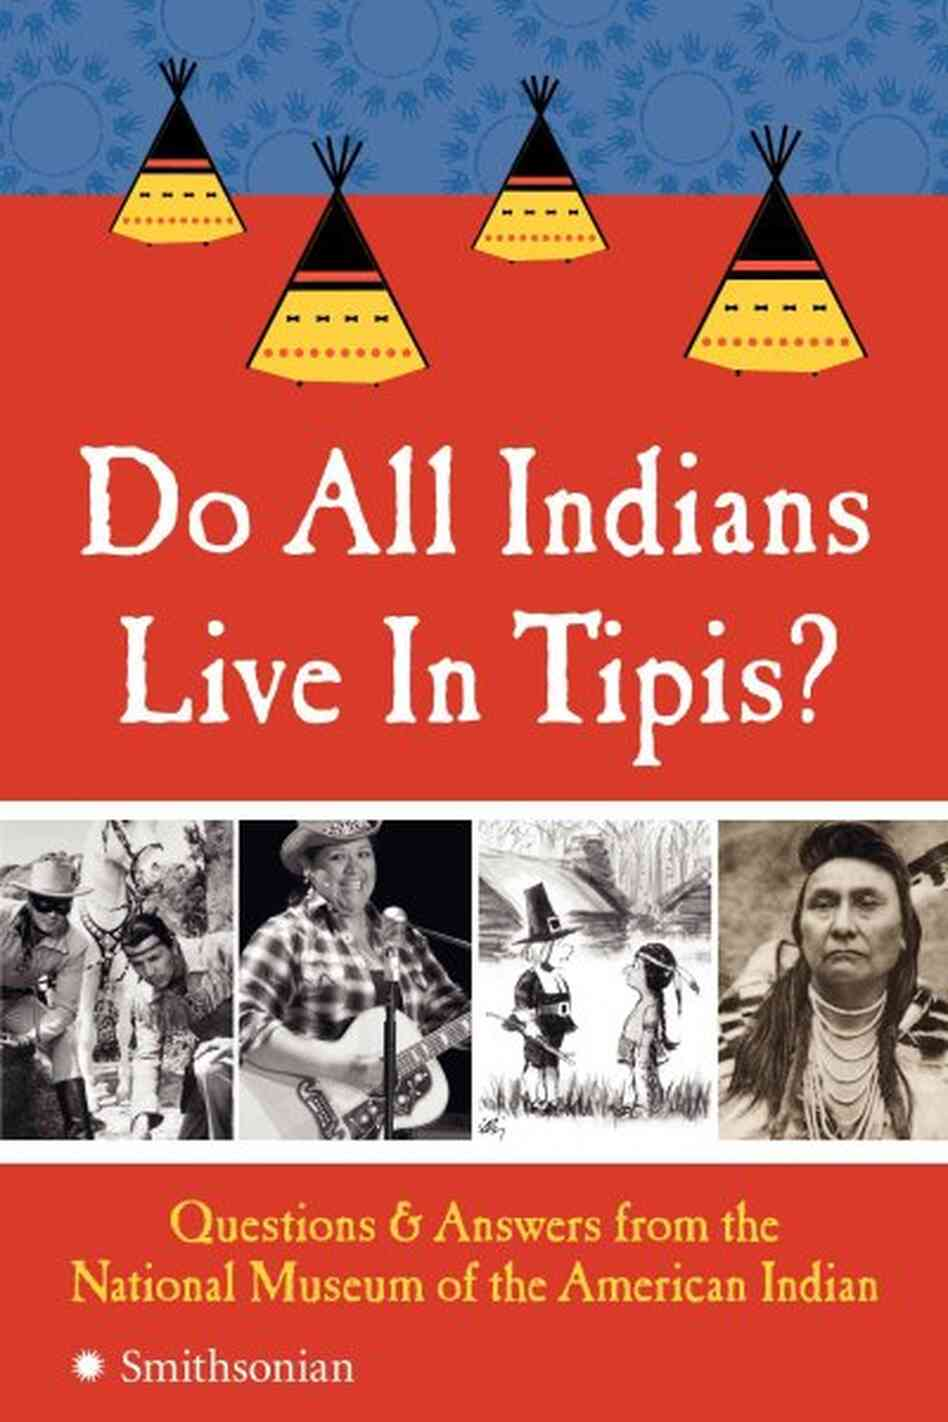 Do All Indians Live in Tipis?